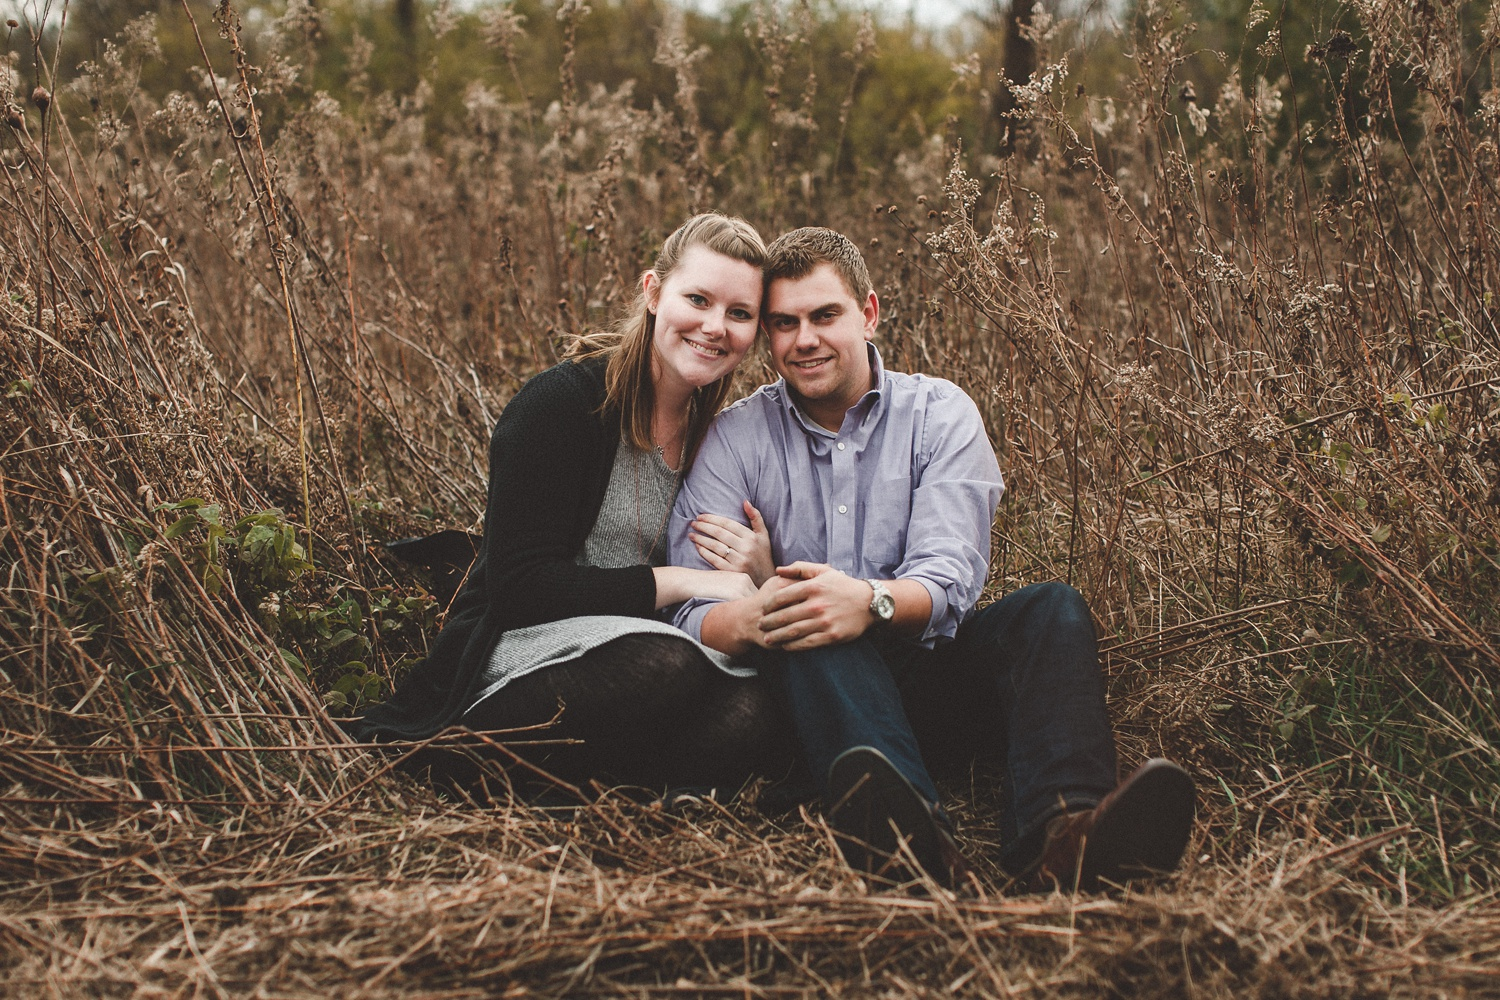 rock_cut_state_park_rockford_IL_engagement_photographer_0006.jpg